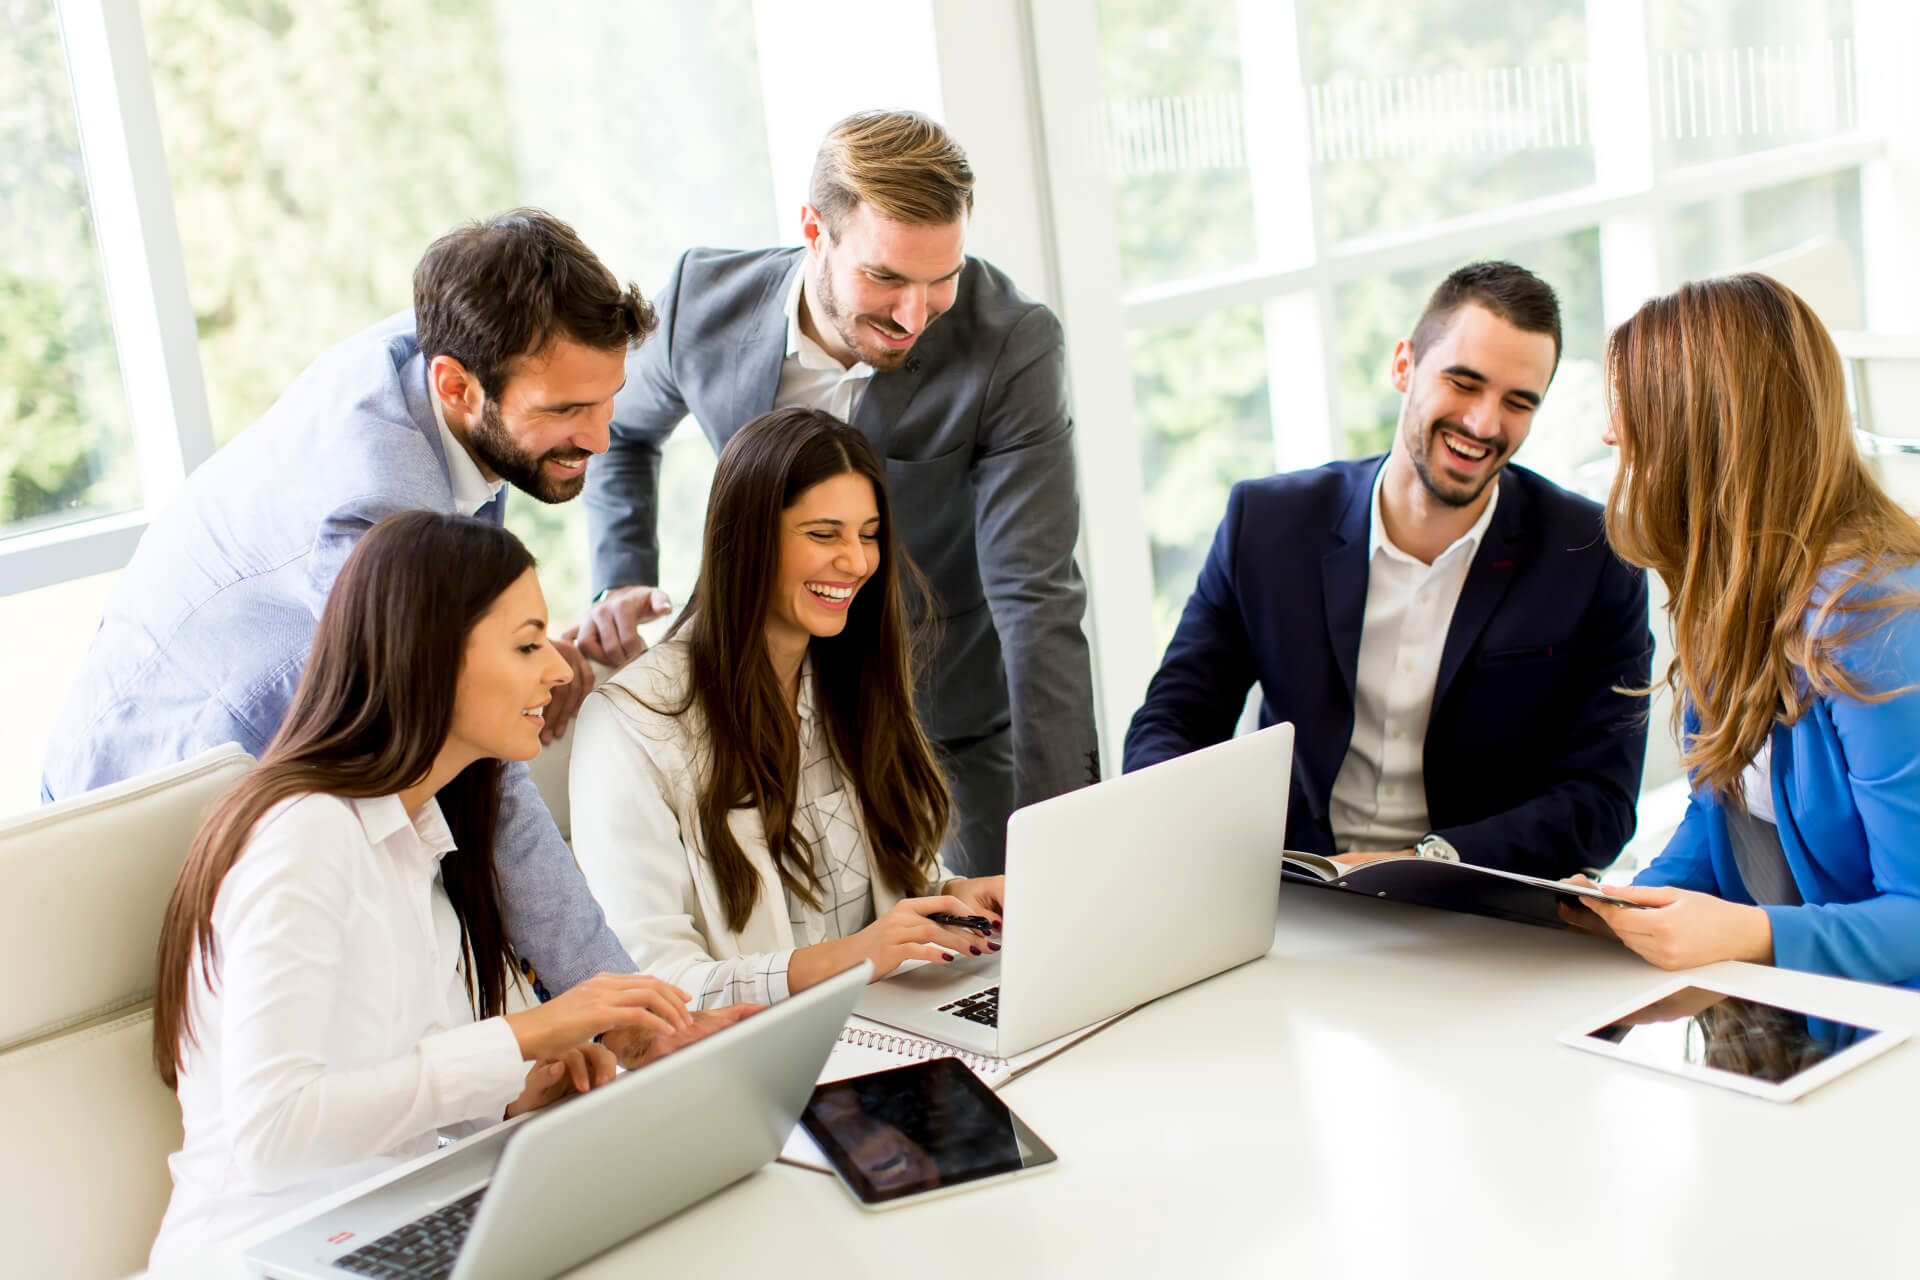 https://bluspace.pl/wp-content/uploads/2021/02/startup-business-team-on-meeting-in-modern-bright-office-interior-and-working-on-laptop-1.jpg